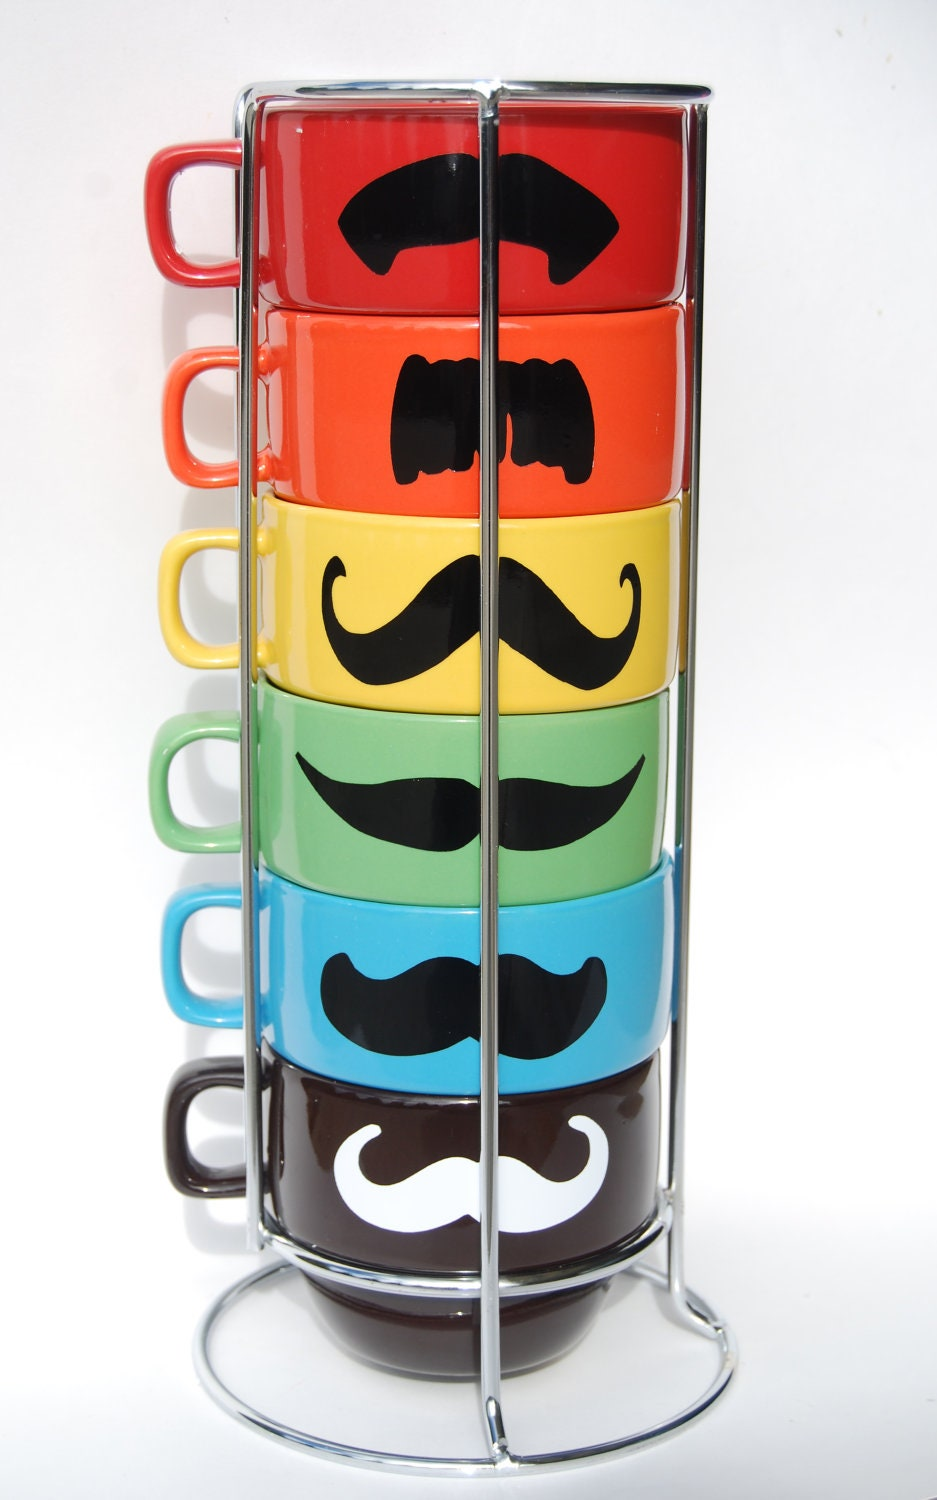 Multi Color Mustache Coffee Mugs - set of 6 stackable mugs and chrome holder - featured in PEOPLE ma